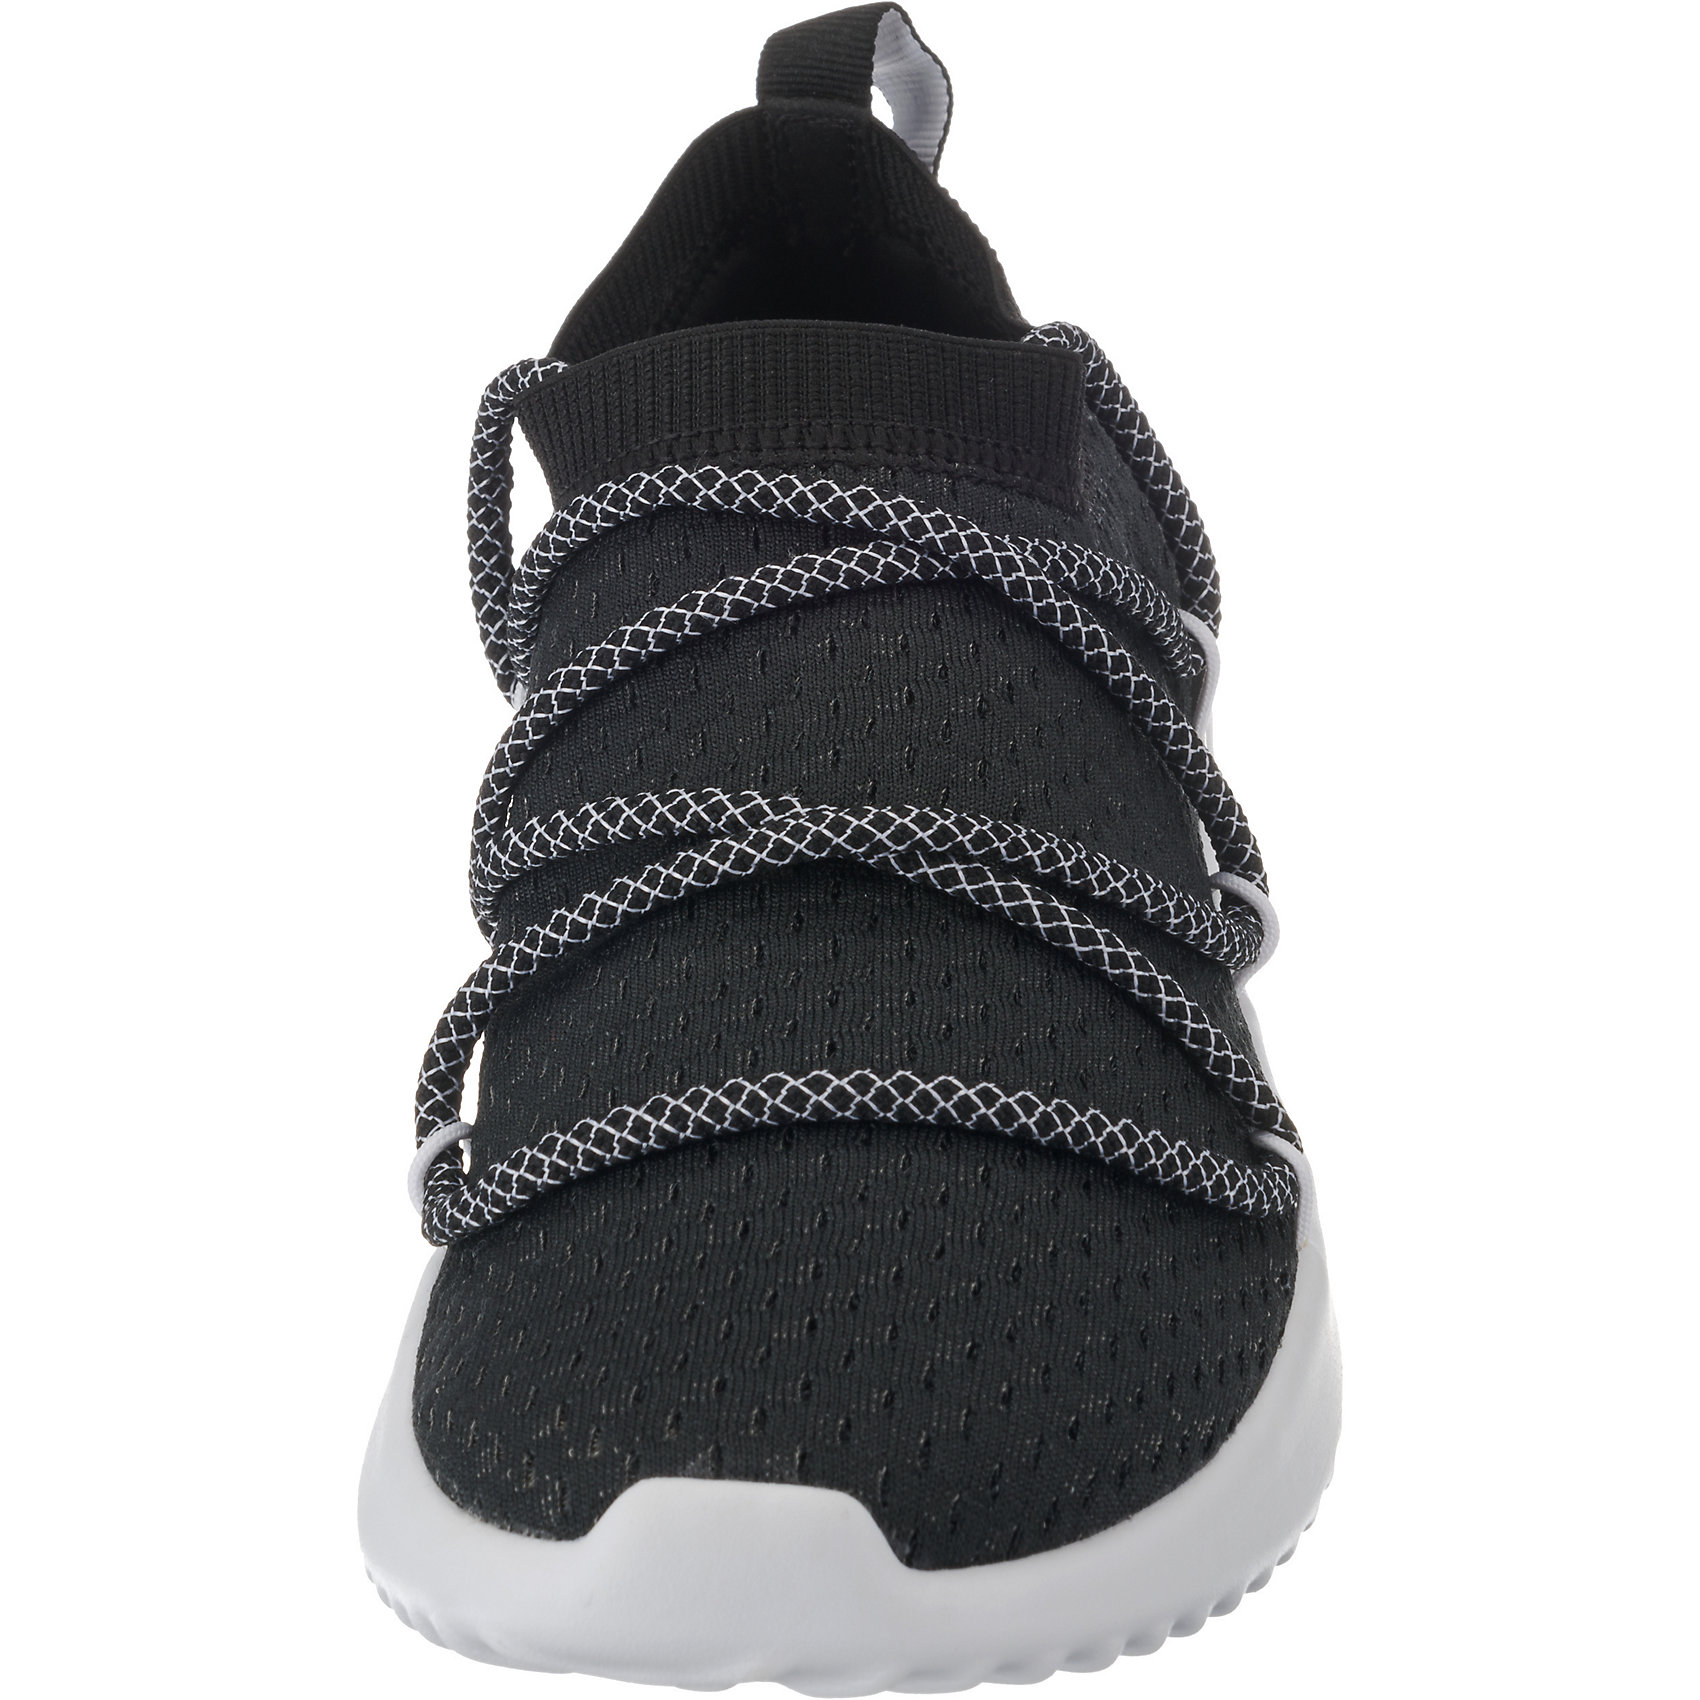 5110fd5998af ... Nike Nike Nike Lunar Huarache Light SP UK6 Black 776373-001 EUR40 air  NikeLab triple ...